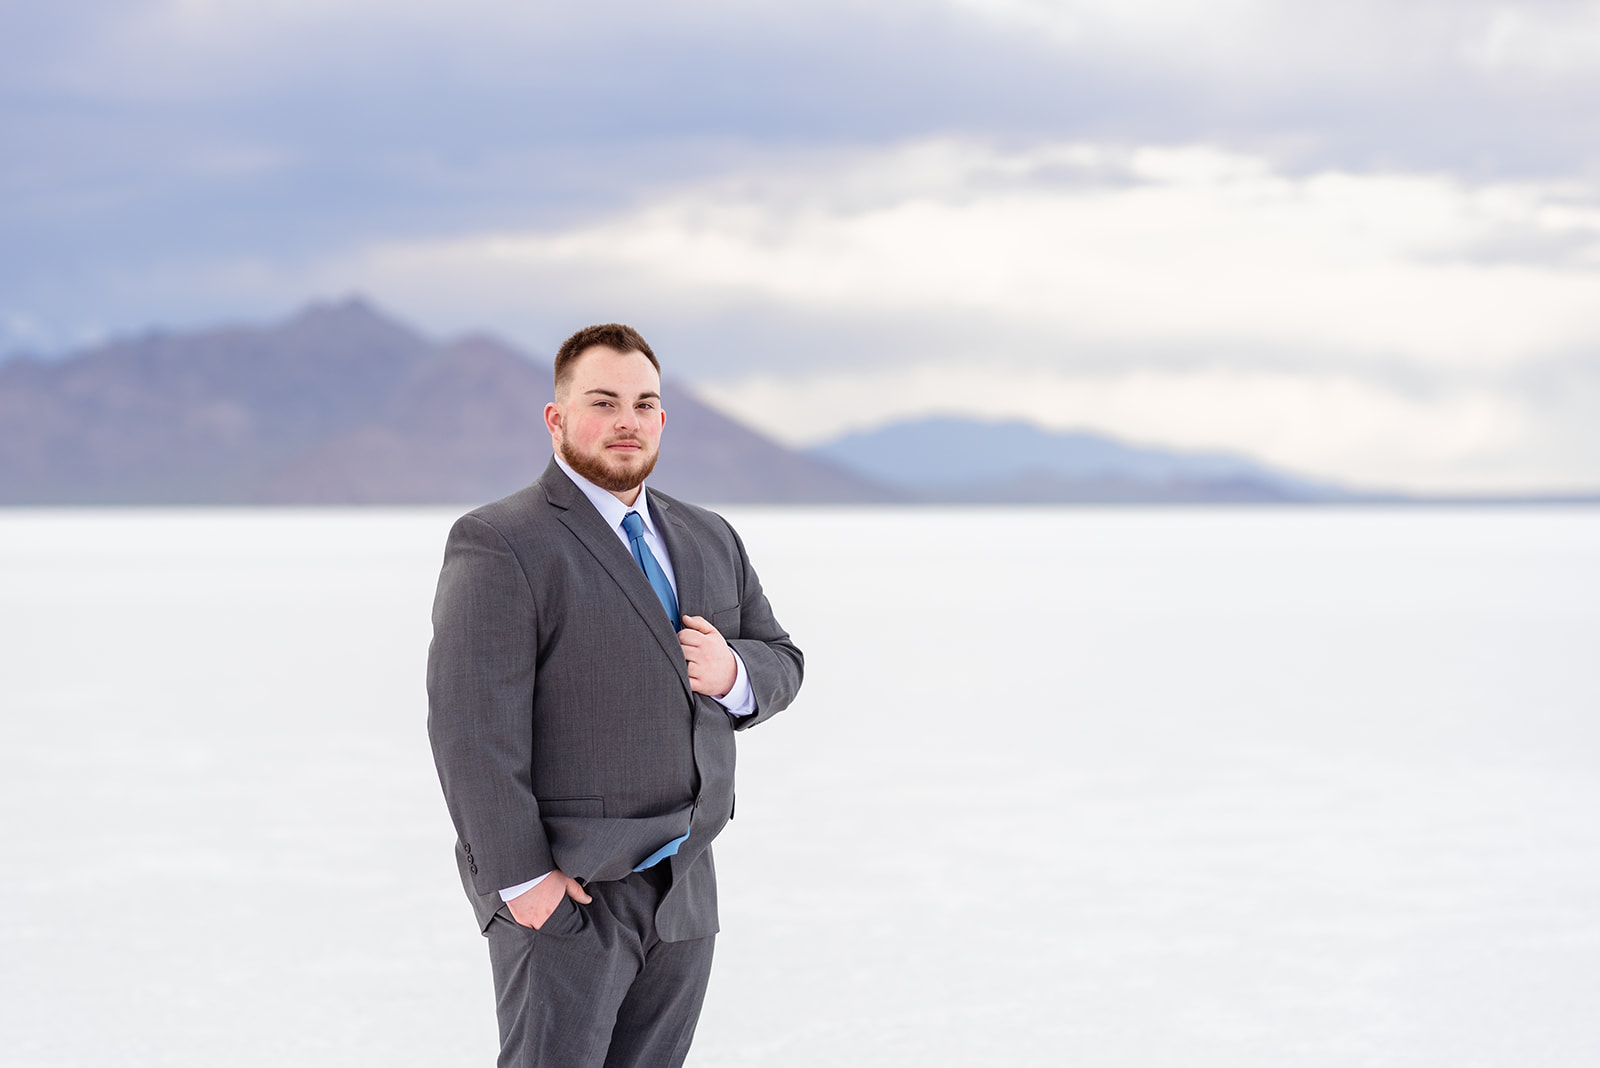 Classic groom portrait of Zach at the Bonneville Salt Falts in Utah. Grey suit and blue tie combo. Taken by Coley Cook Photography.